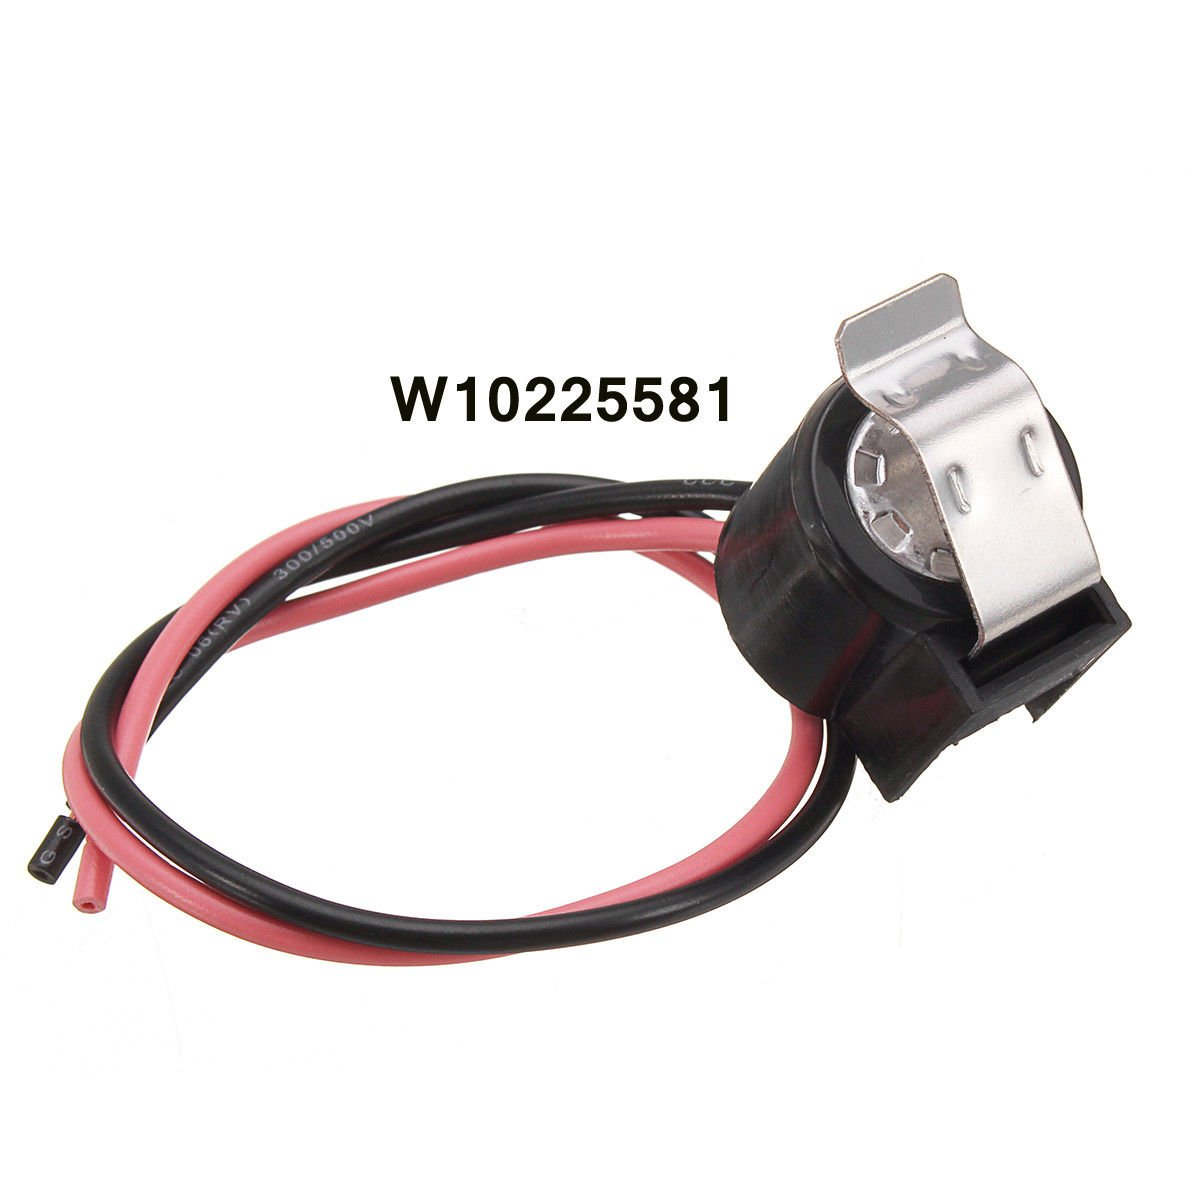 MAYITOP W10225581 Refrigerator Bimetal Defrost Thermostat for Whirlpool KitchenAid Kenmore Replace WPW10225581, AP6017375, PS11750673, PS237680,2321799